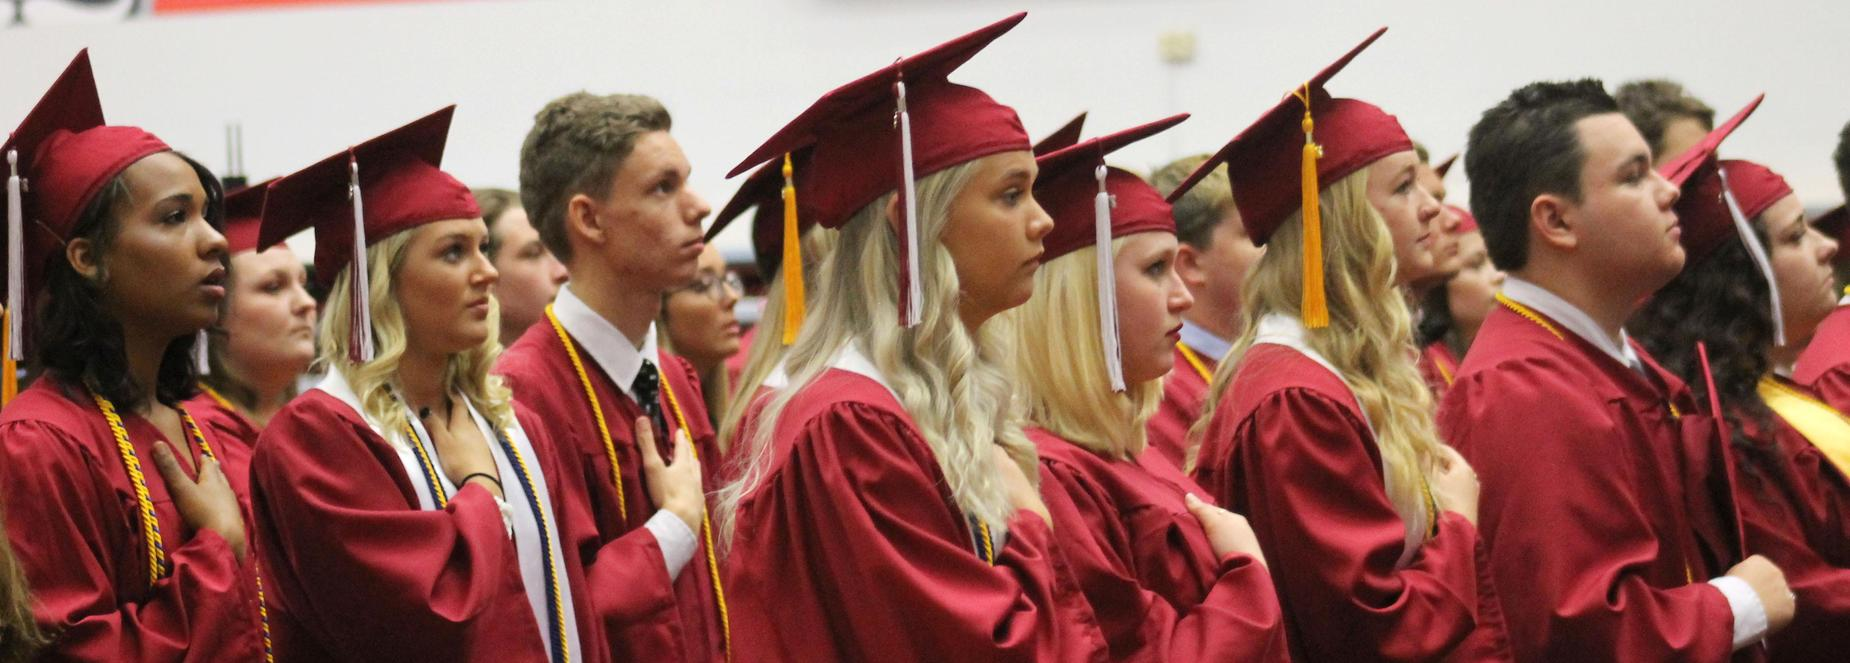 Cheatham County Central High School graduation